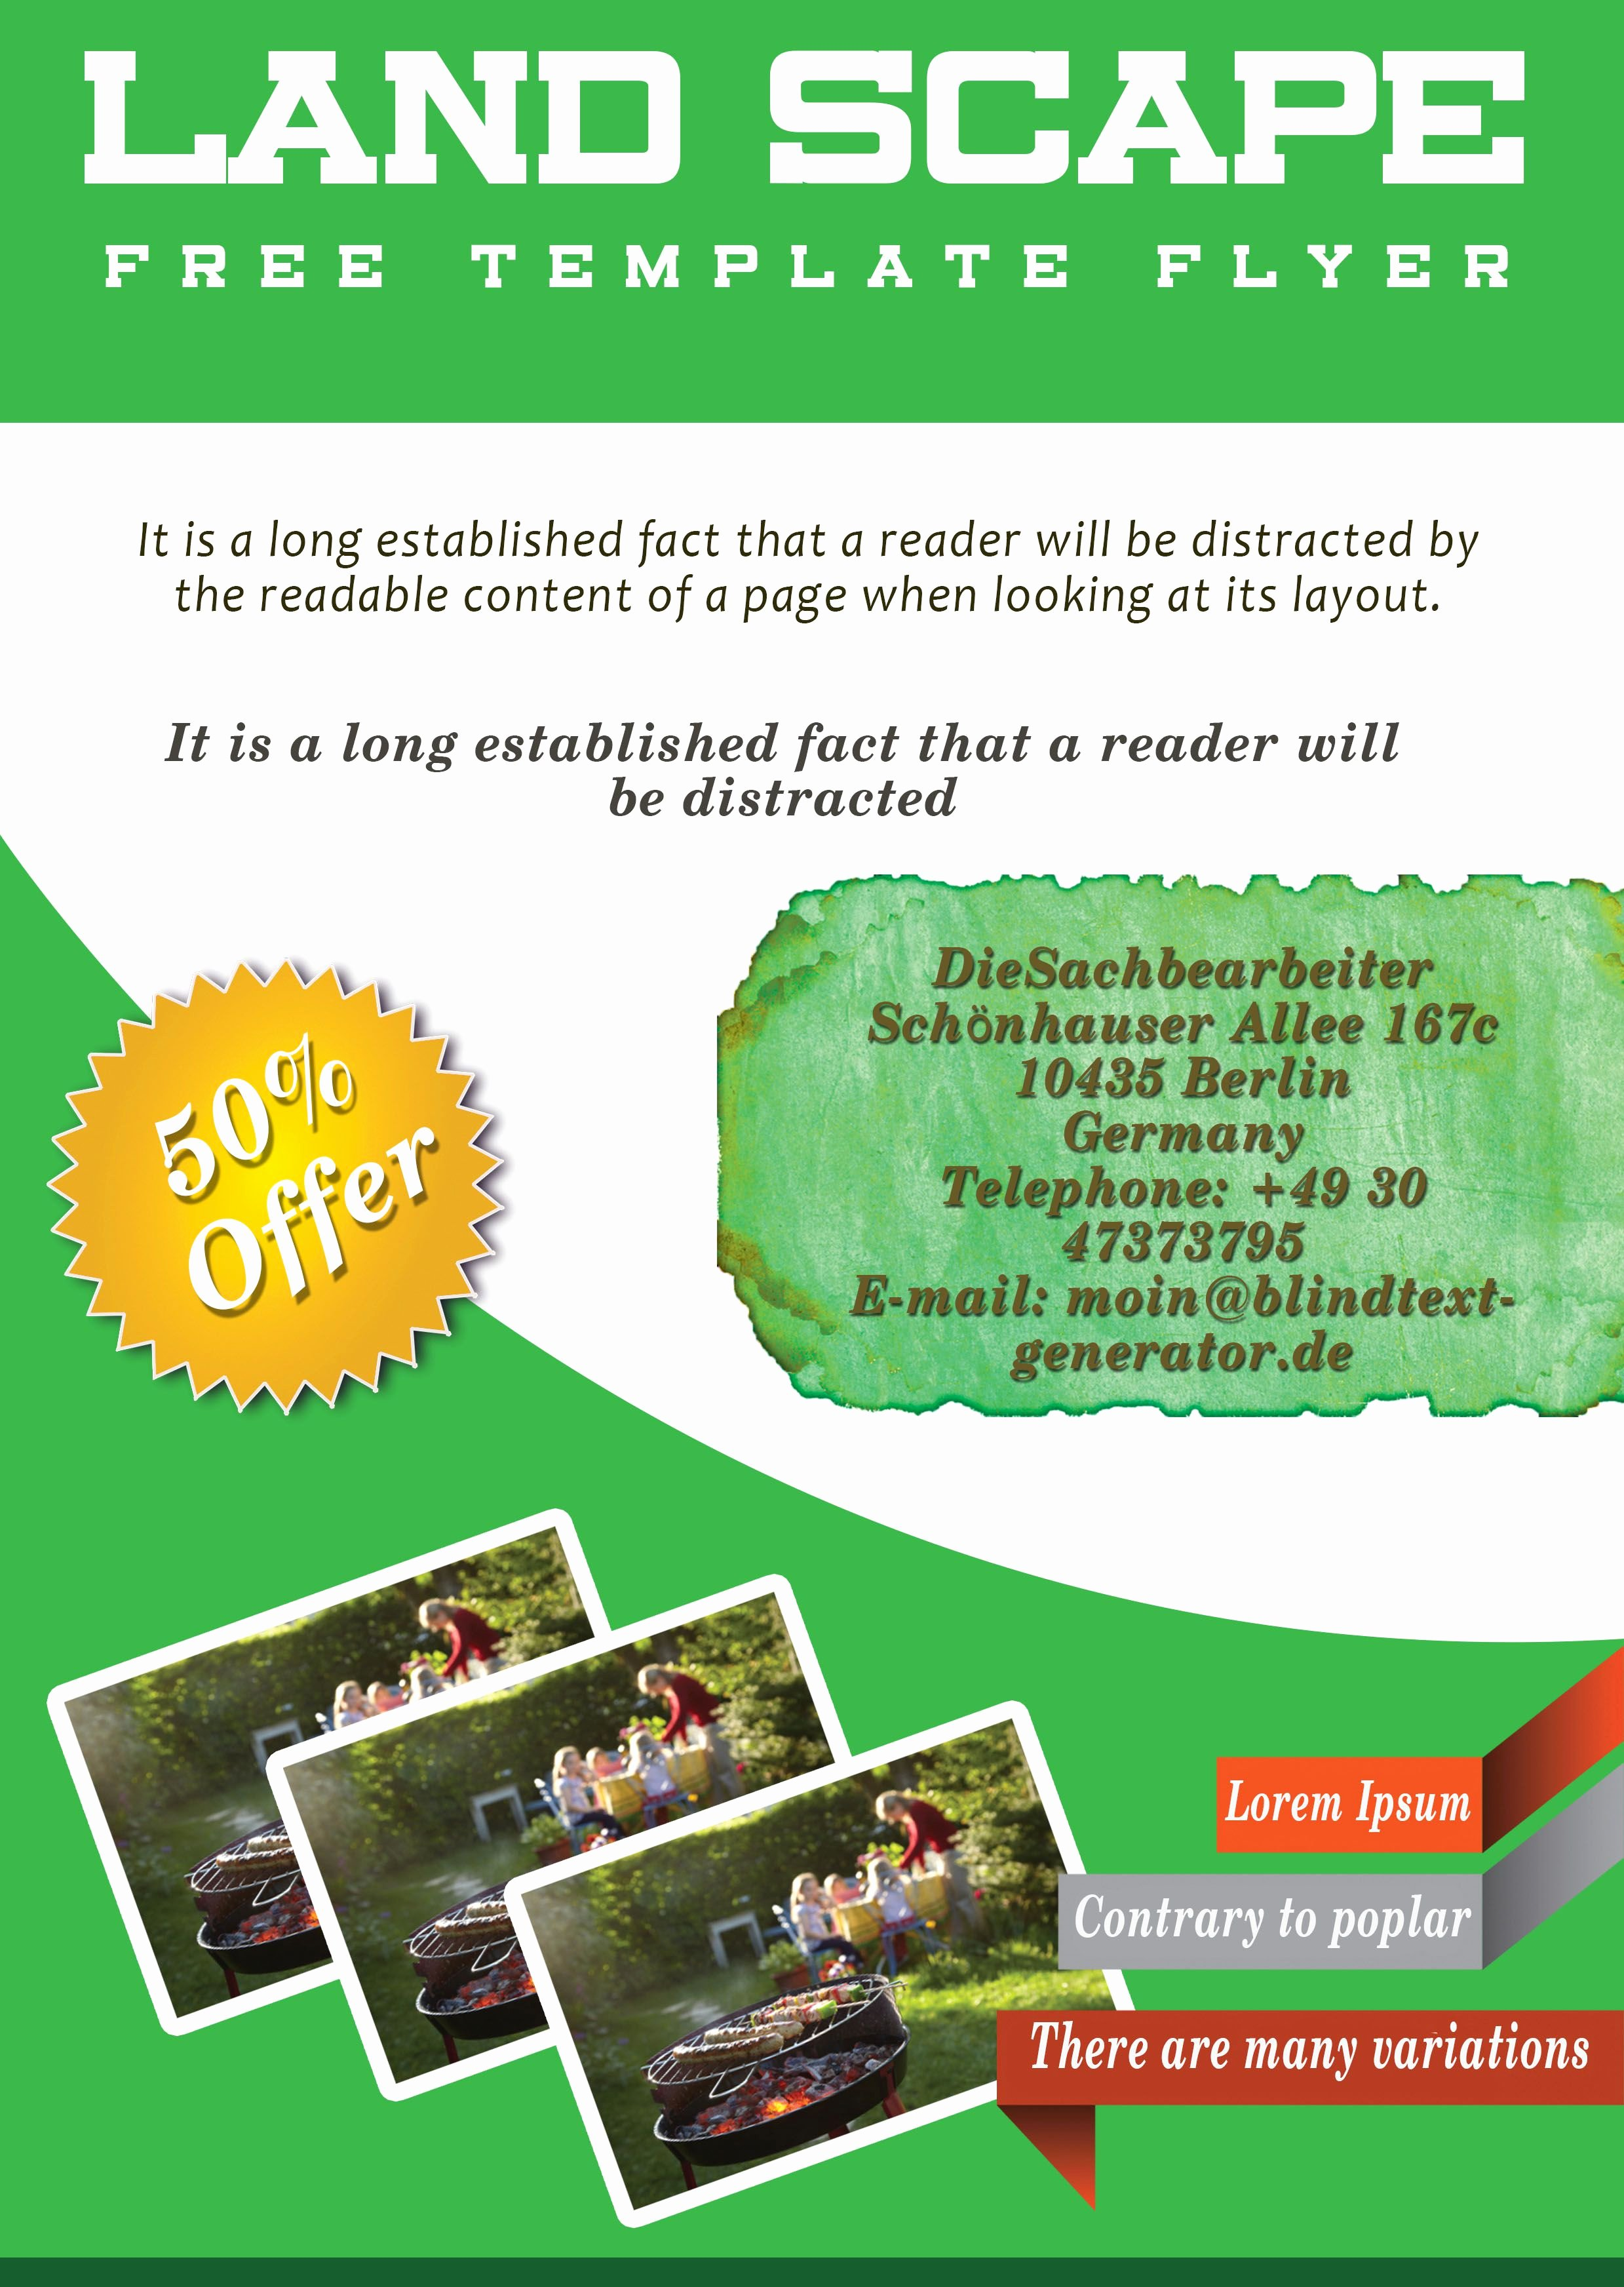 Lawn Care Flyers Template Beautiful Free Landscaping Flyer Templates to Power Lawn Care